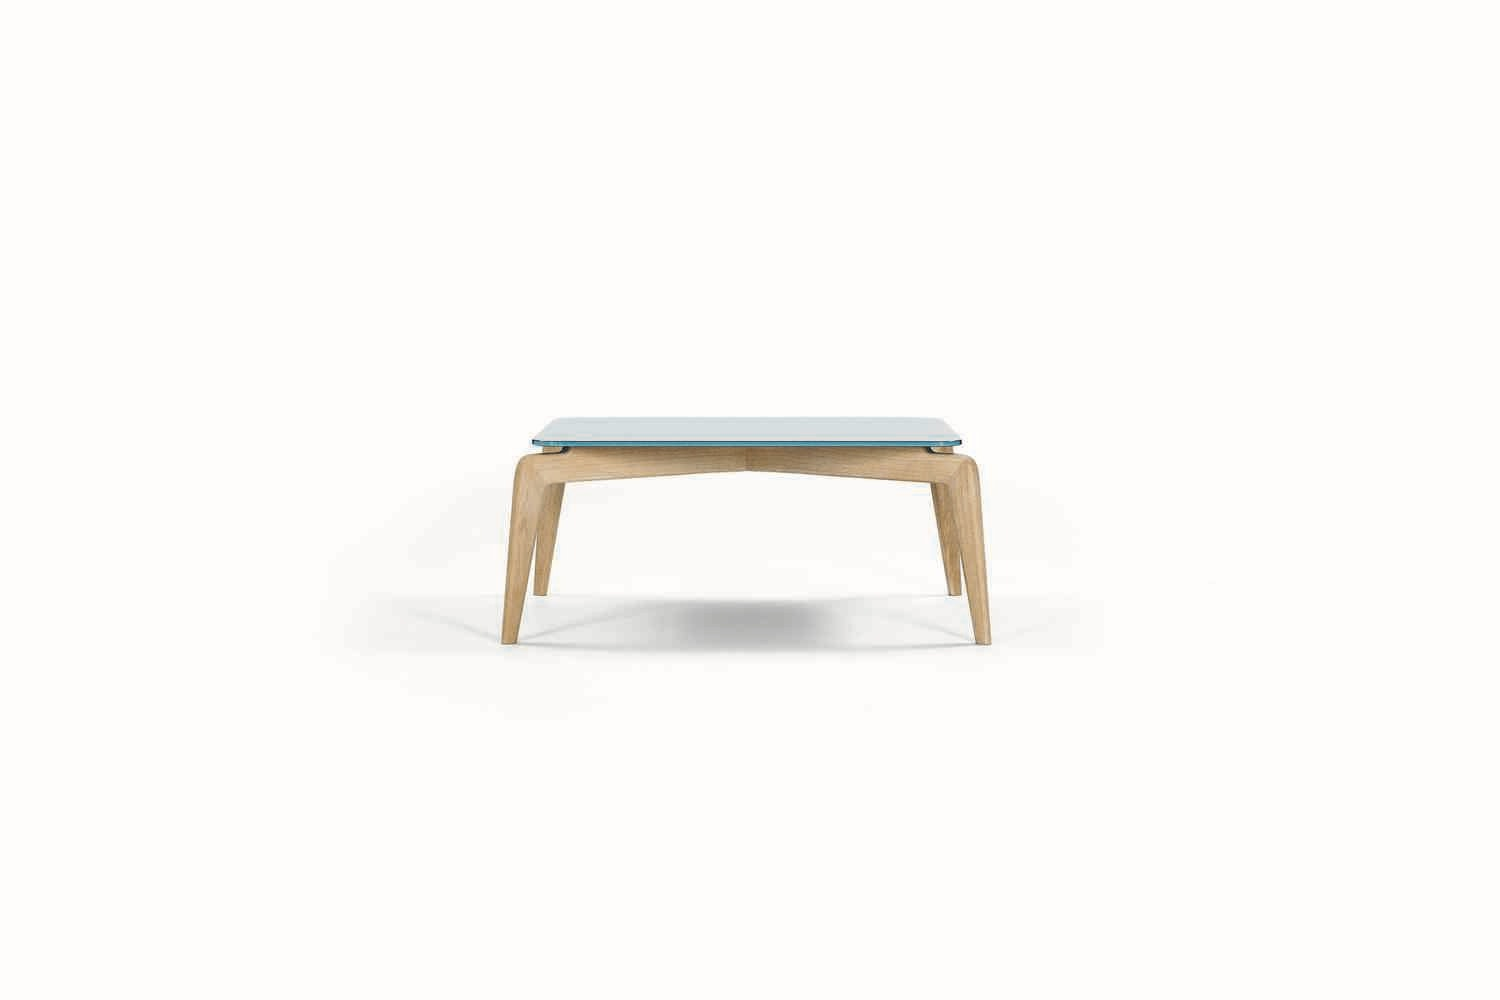 Munich Coffee Table by Sauerbruch Hutton for ClassiCon